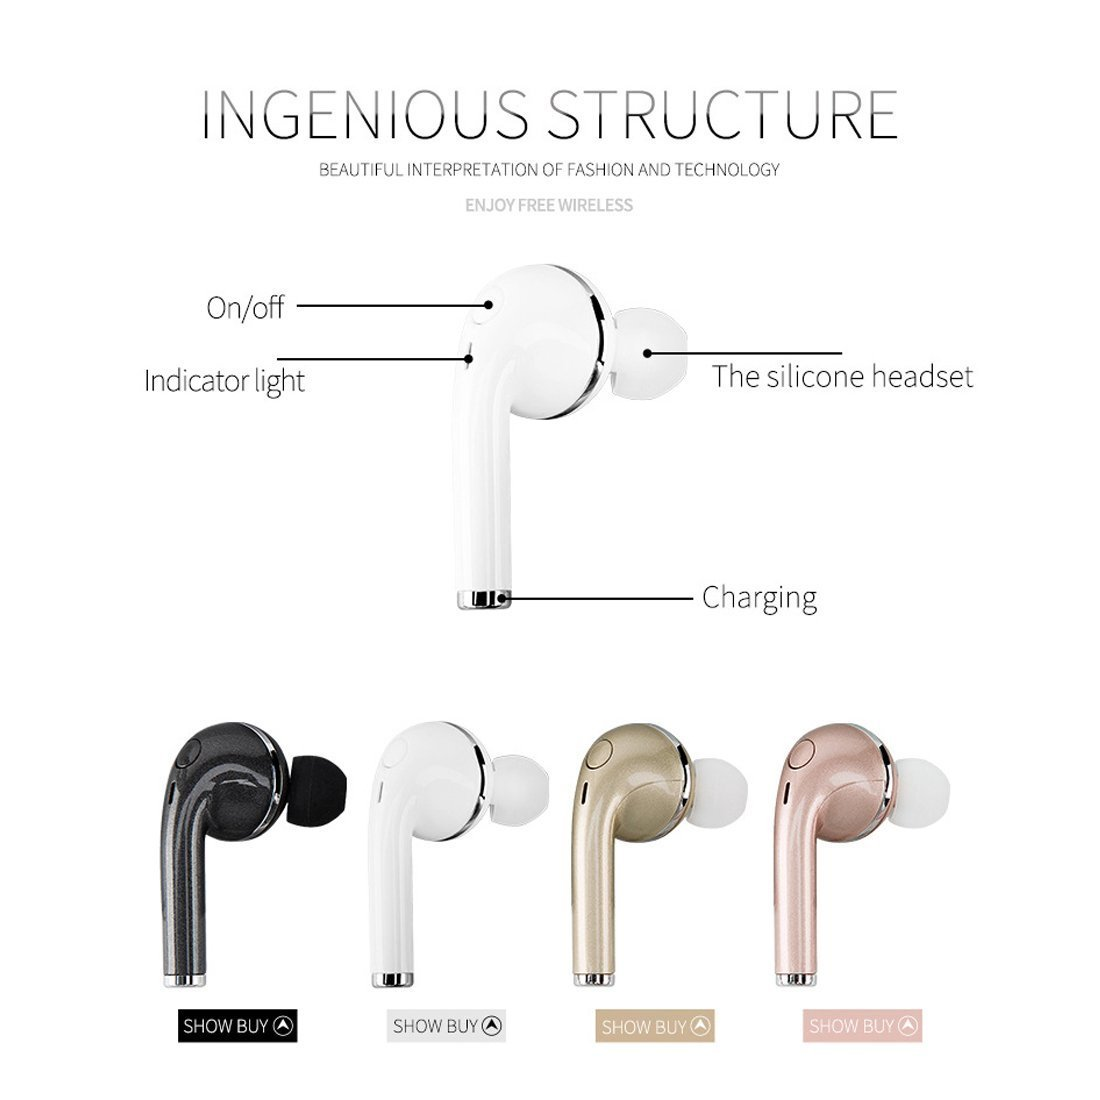 gzmy Bluetooth 4.1 auriculares, Mini auriculares inalámbricos auriculares in-ear para iPhone 7 Plus 6S 6S Plus y Samsung Galaxy S7 S8 y teléfonos Android, ...